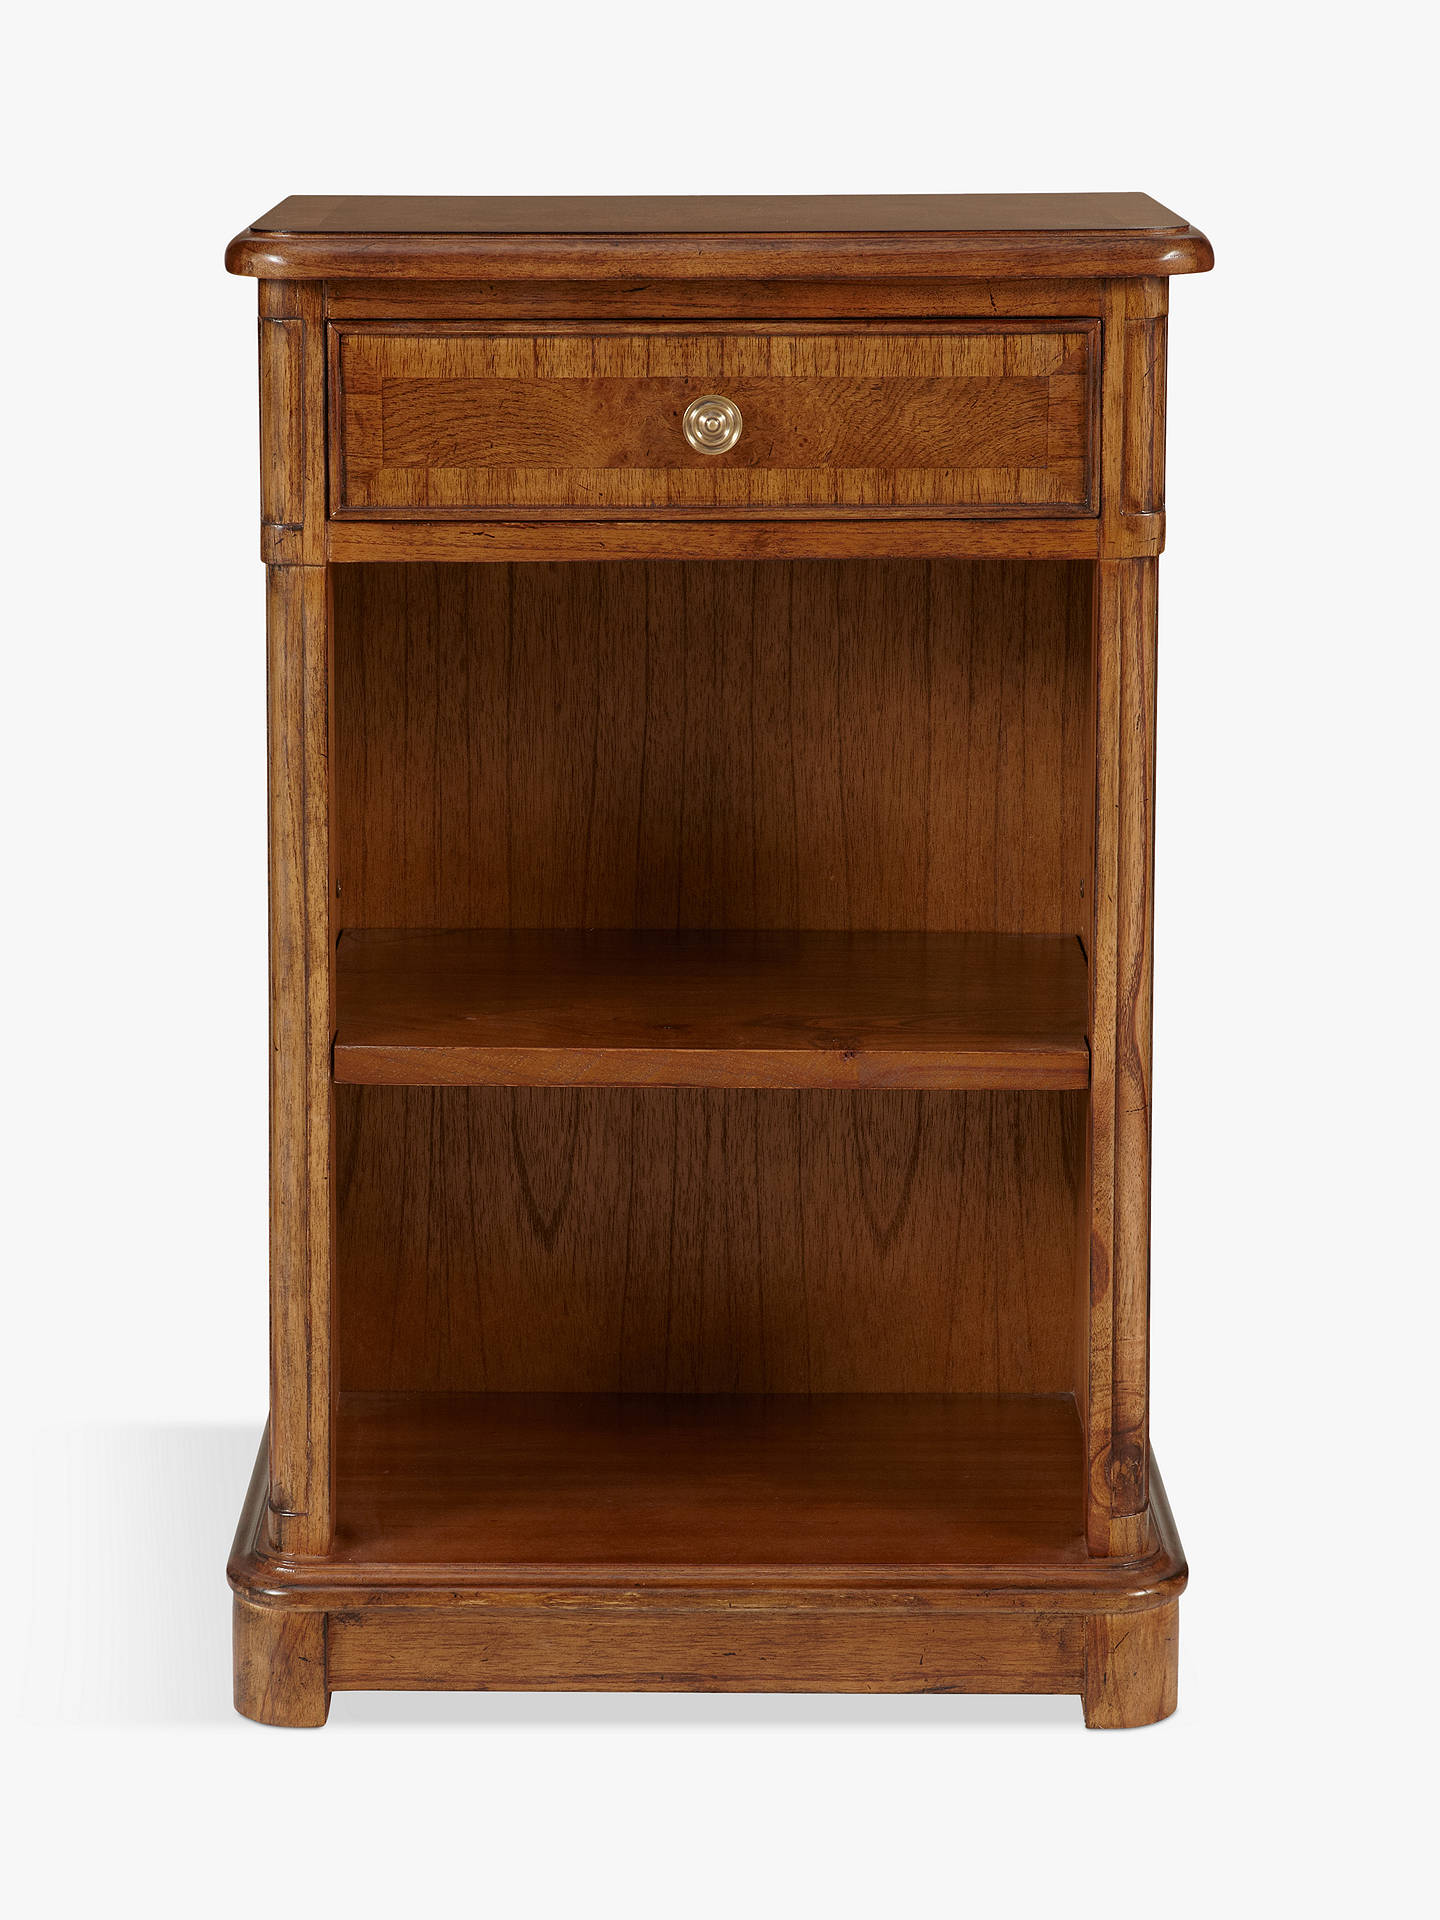 BuyJohn Lewis & Partners Hemingway Open Cupboard With Drawer Online at johnlewis.com